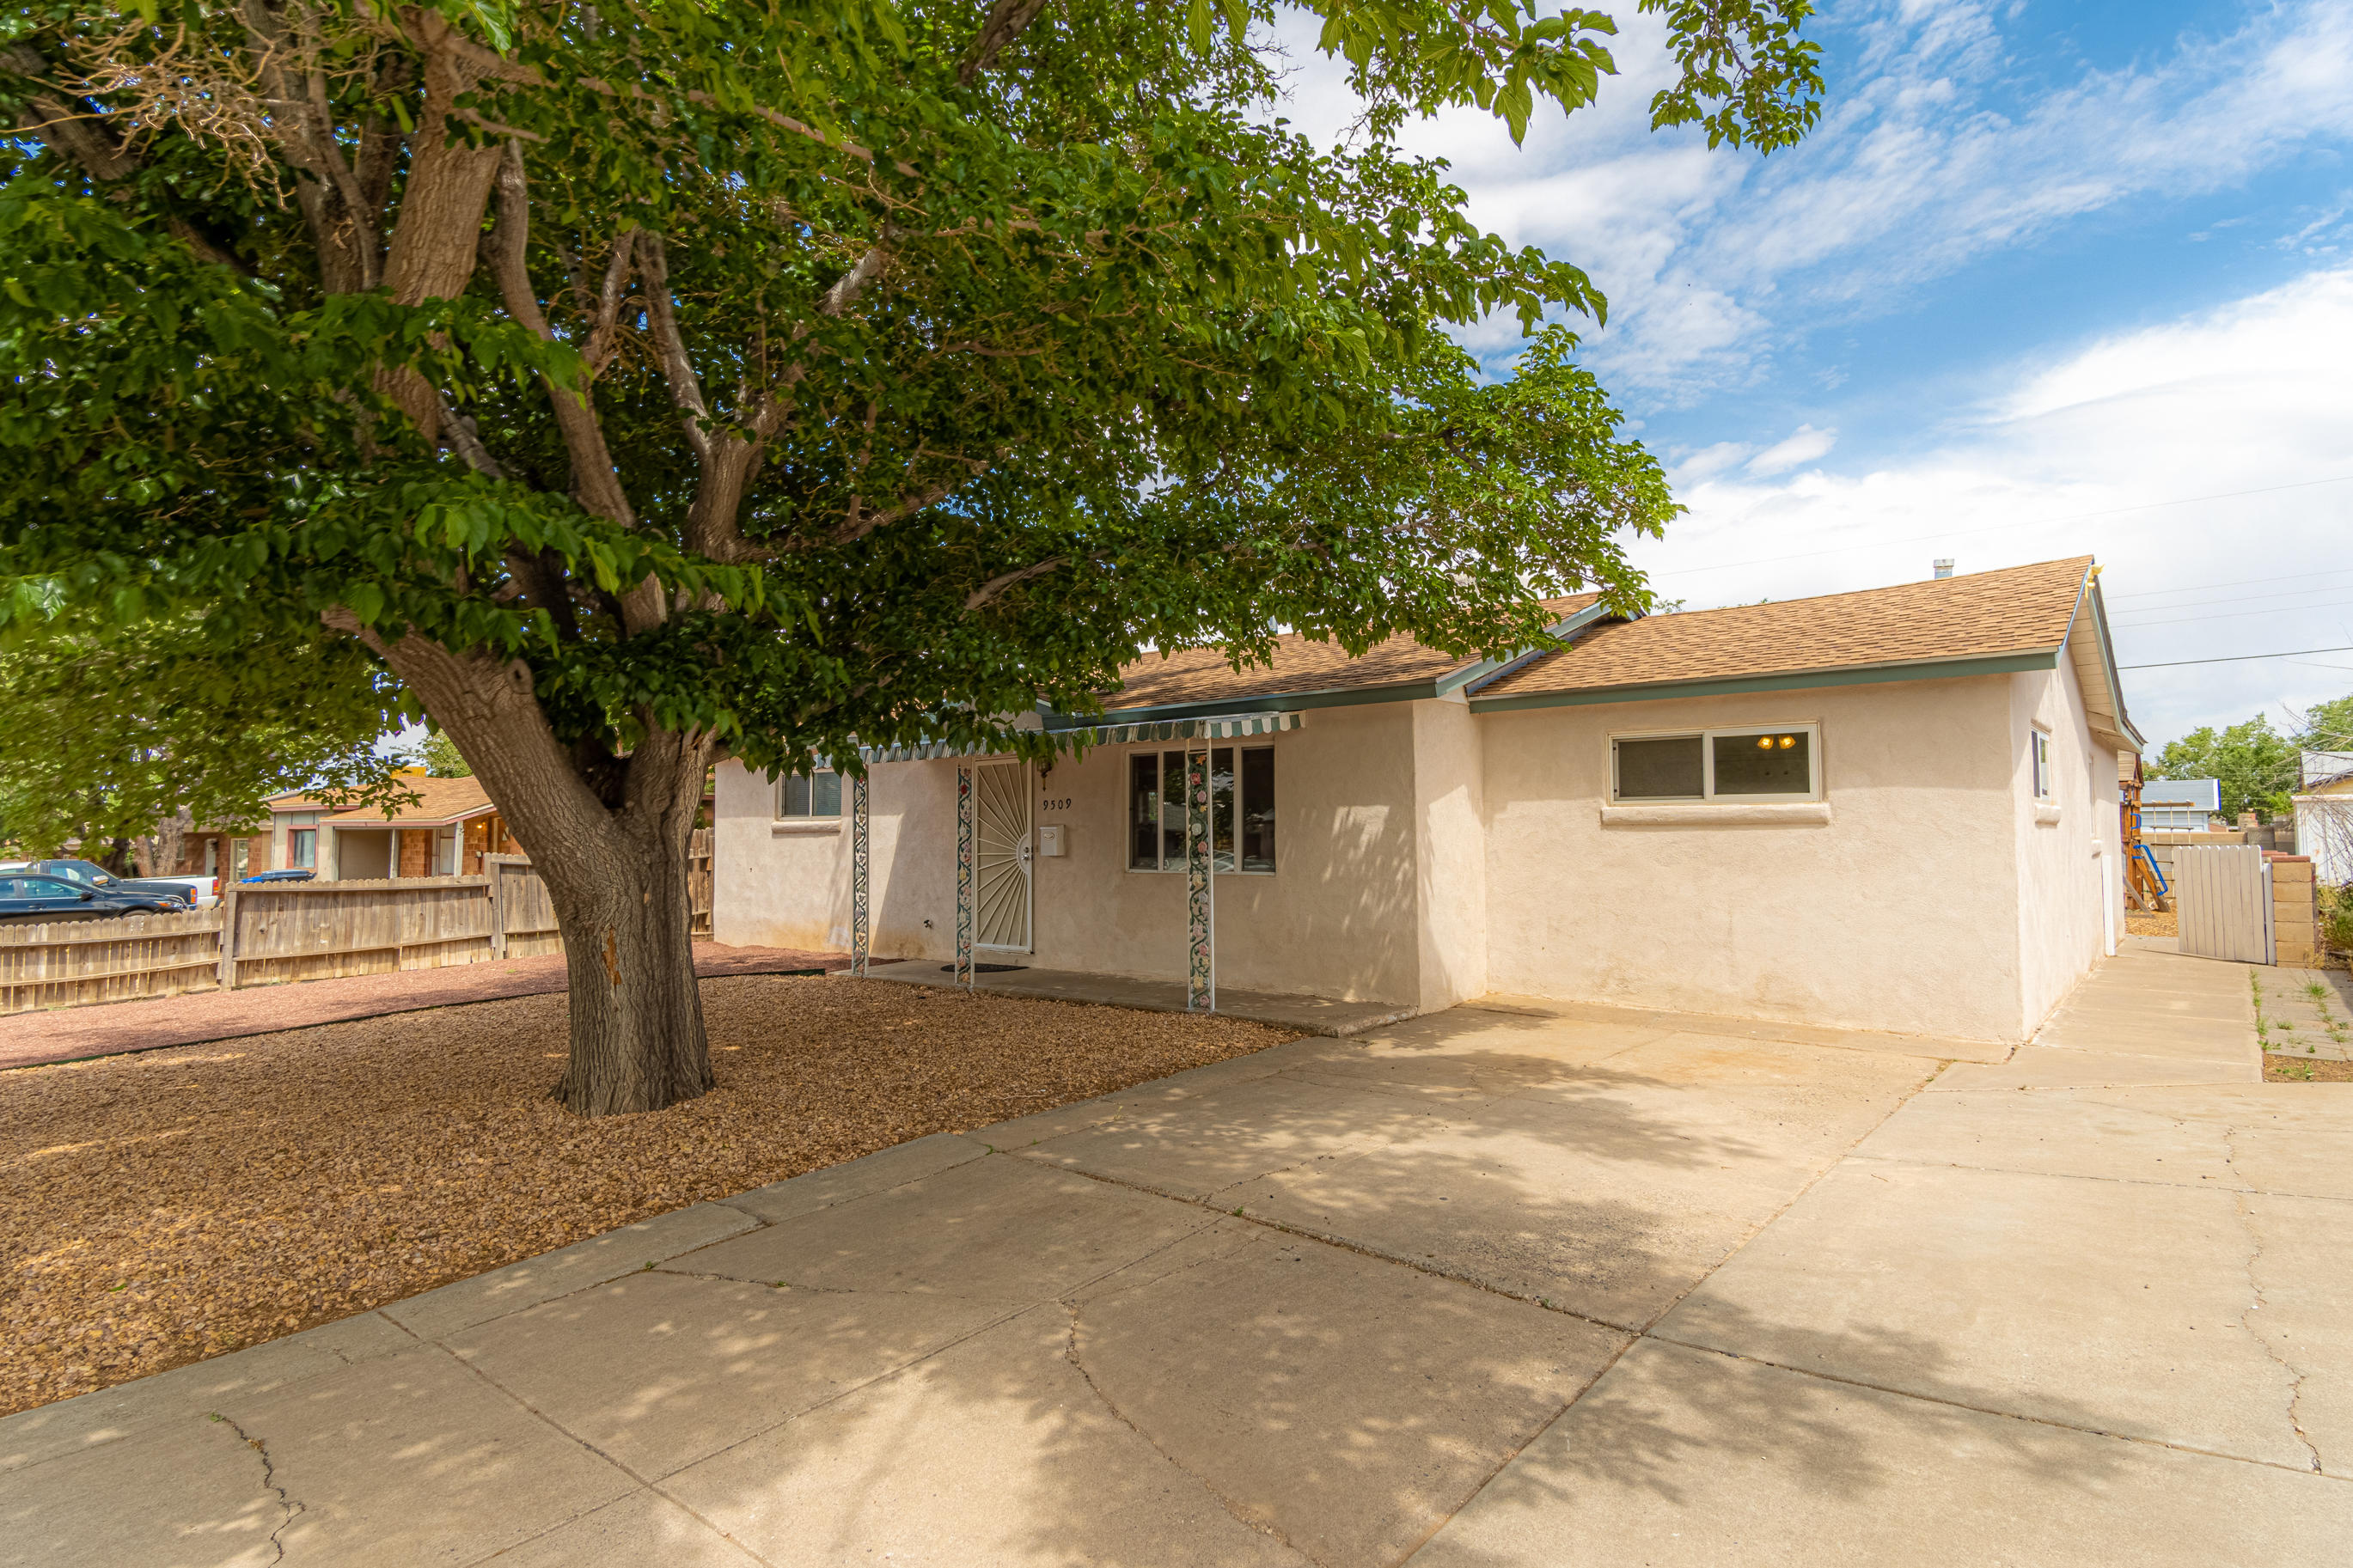 Nicely Updated, Move-In Ready, Popular NE Heights Neighborhood! 3 BR's + LR + dining area/office and large service room w/ storage and access to backyard. Owner has lovingly improved this property, brand new eat-in kitchen w/ granite counters; updated bath, pretty vinyl flooring throughout, newer windows, furnace, water heater, cooler, and roof. Good sized backyard has covered porch and ample room to play/entertain/relax. Sandia HS district. Shows Great!